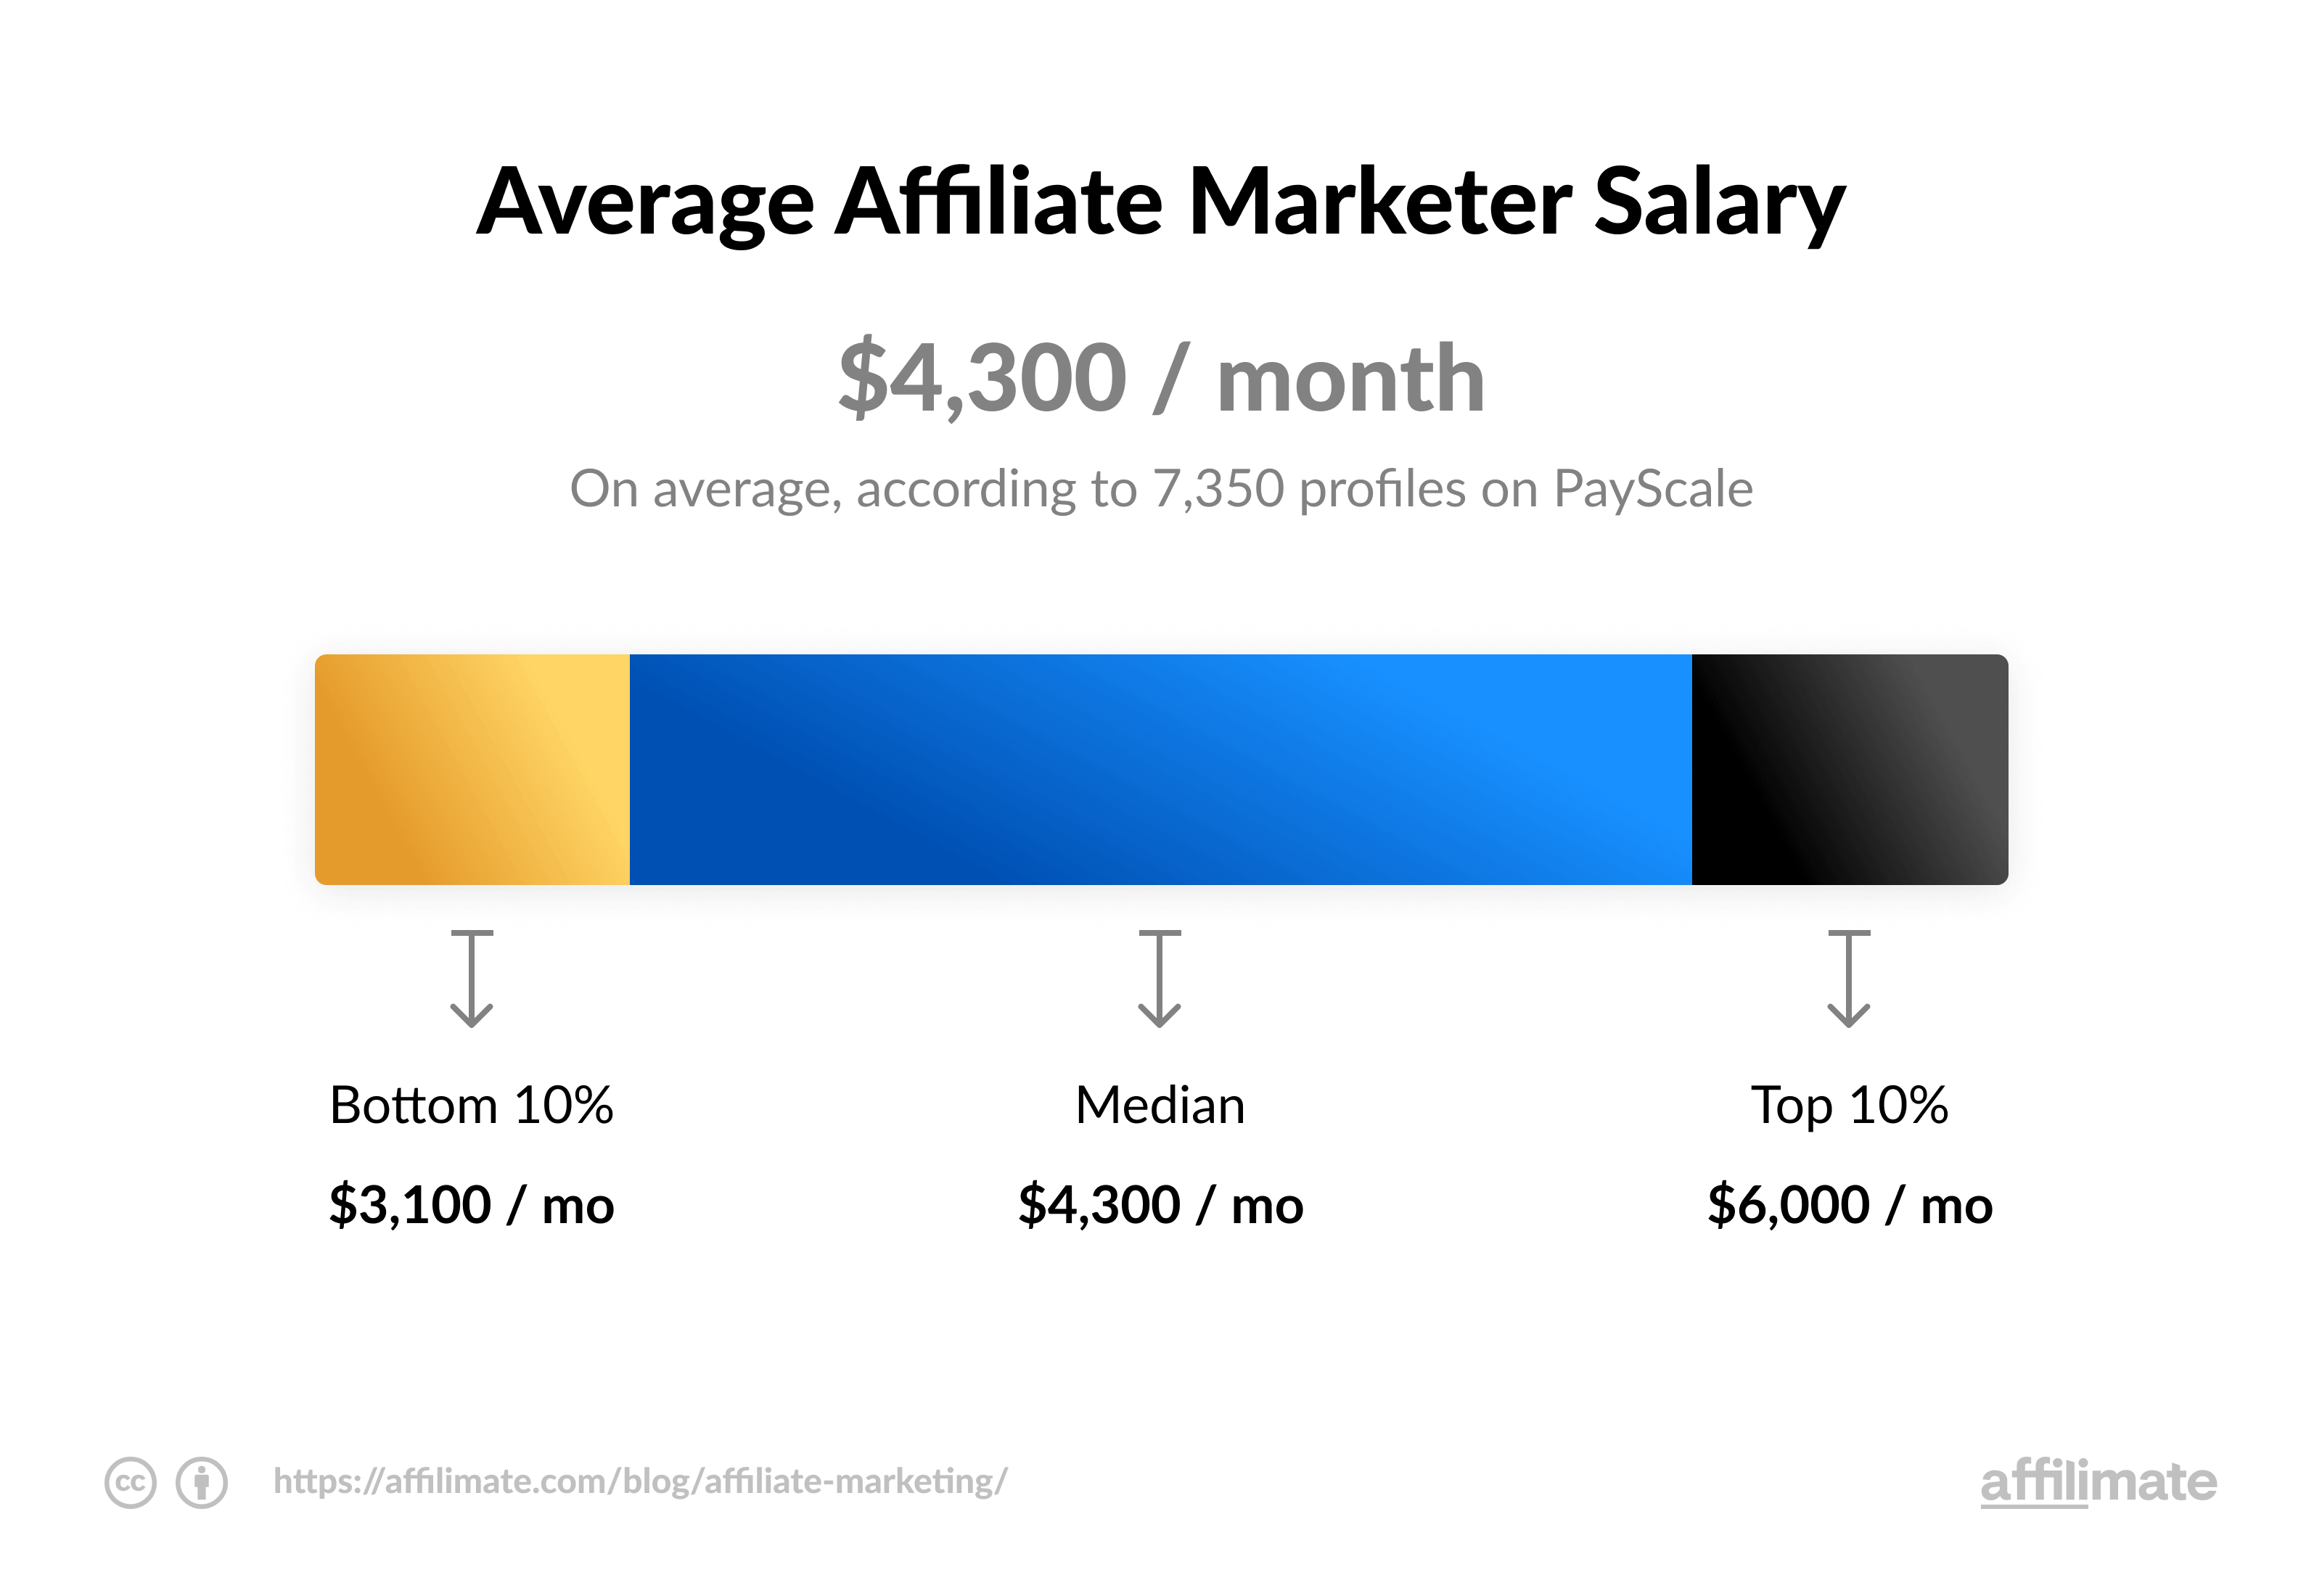 Affiliate Marketer Salary